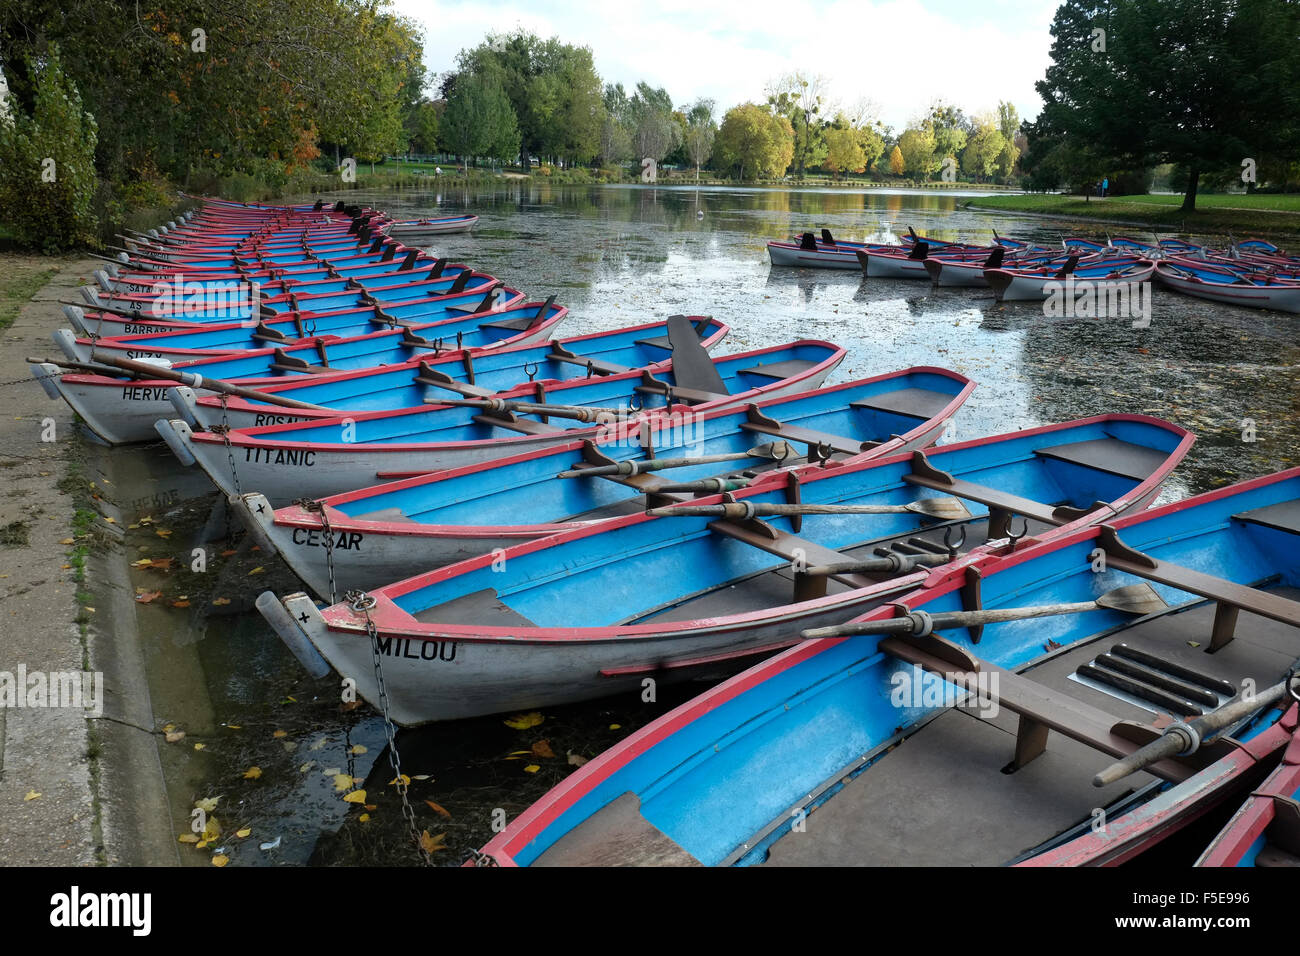 Row boats in Bois de Vincennes, Paris, France, Europe - Stock Image